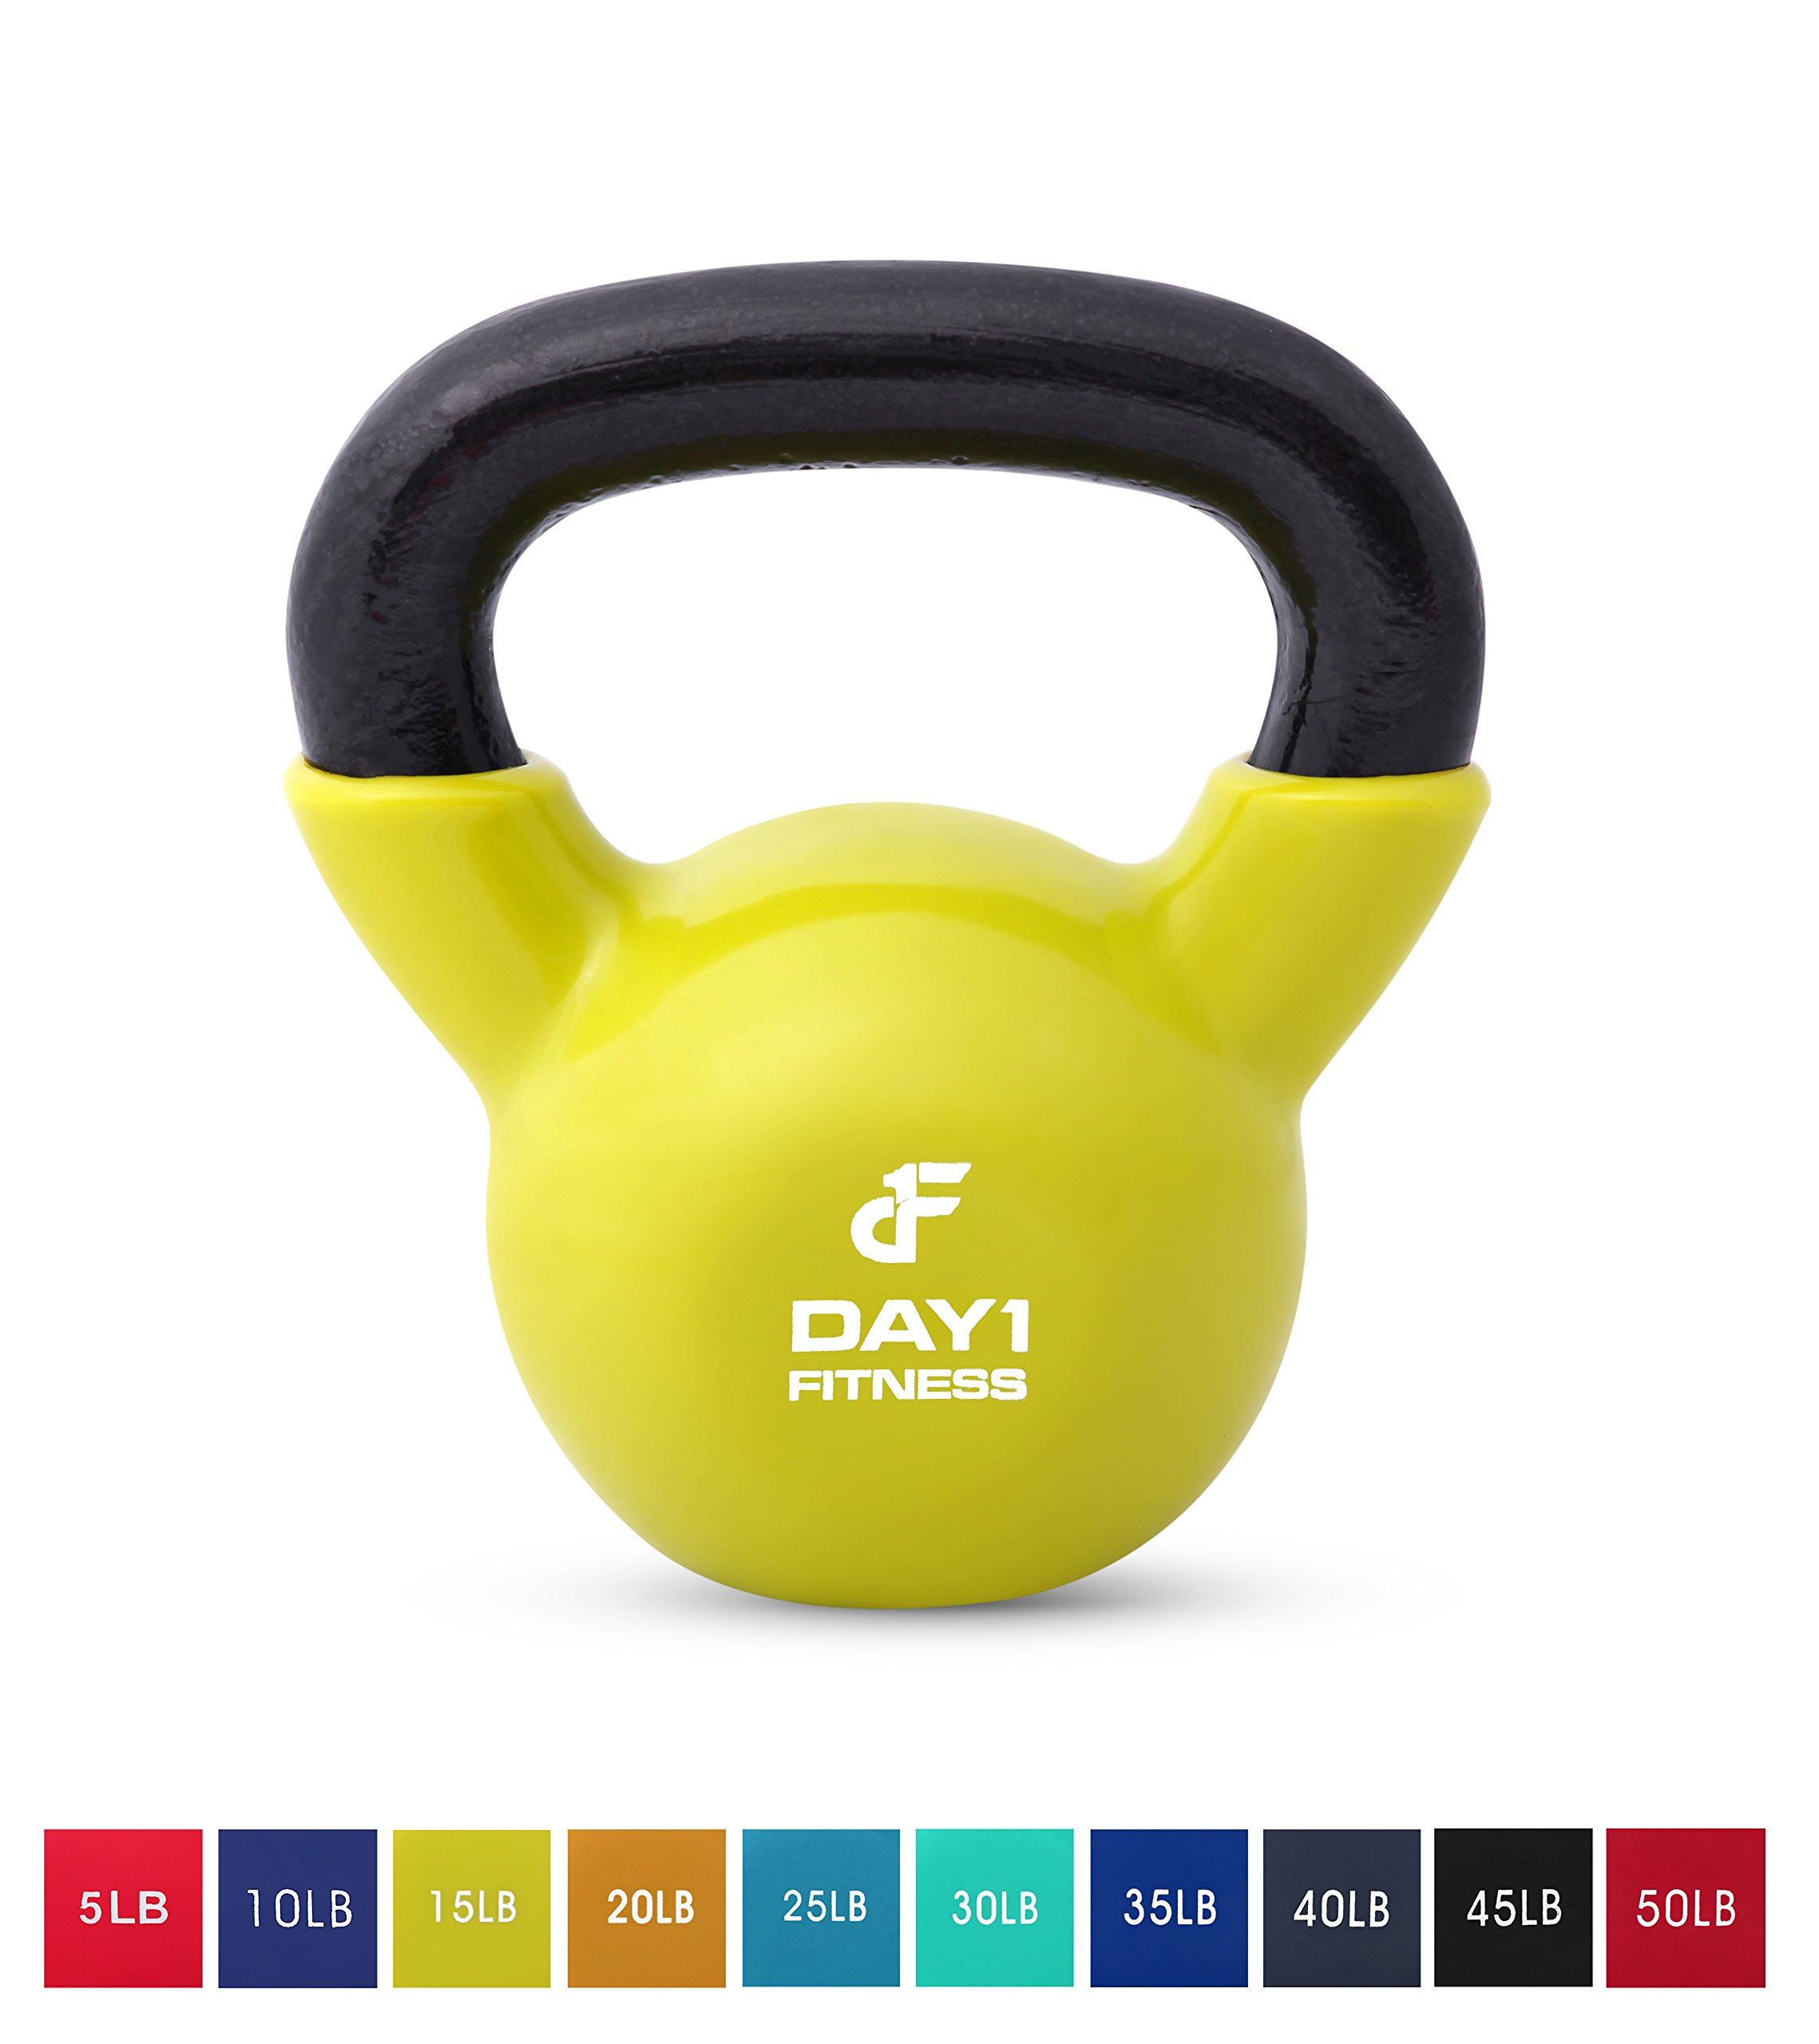 Day 1 Fitness Kettlebell Weights Vinyl Coated Iron 15 Pounds - Coated for Floor and Equipment Protection, Noise Reduction - Free Weights for Ballistic, Core, Weight Training by Day 1 Fitness (Image #1)